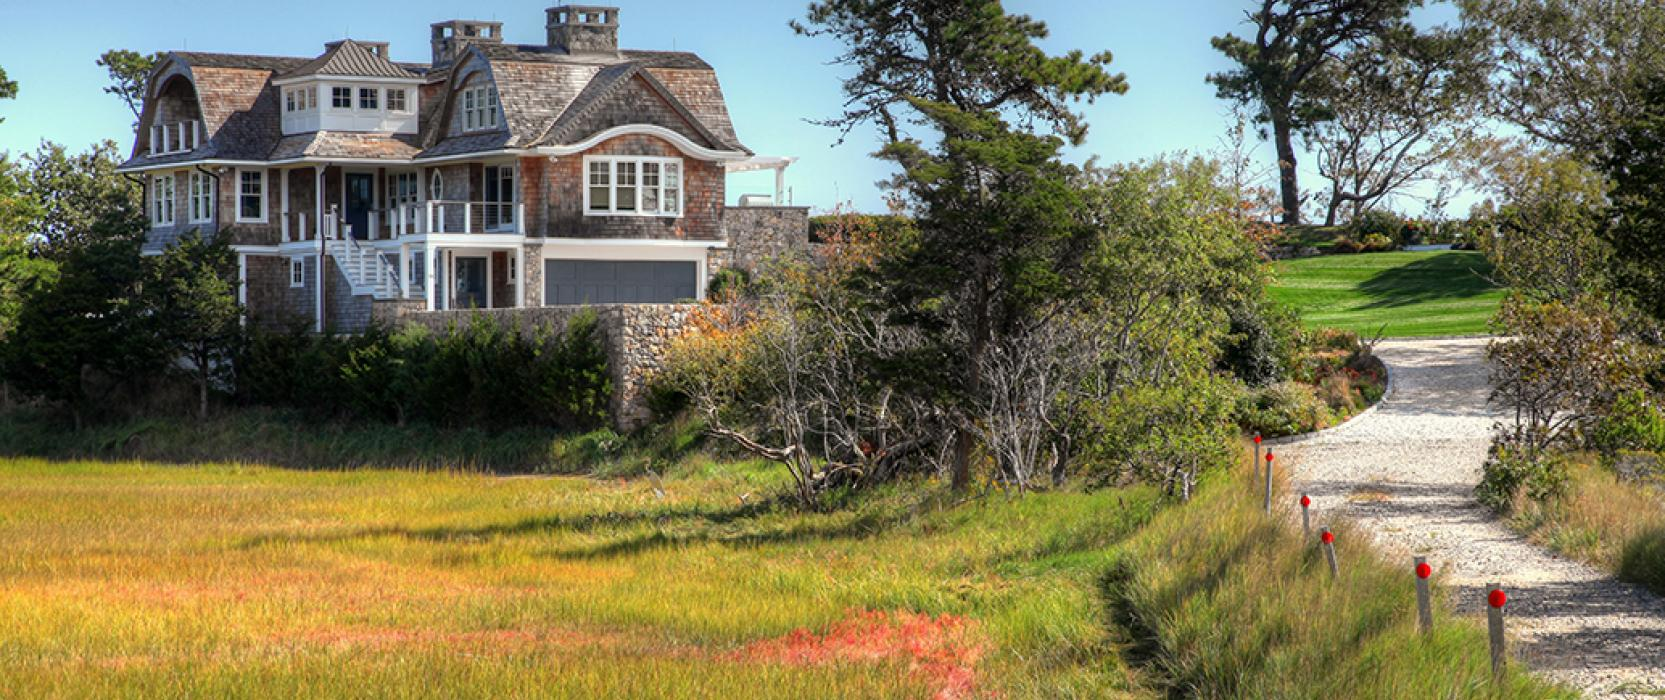 High end Cape Cod New England Architecture